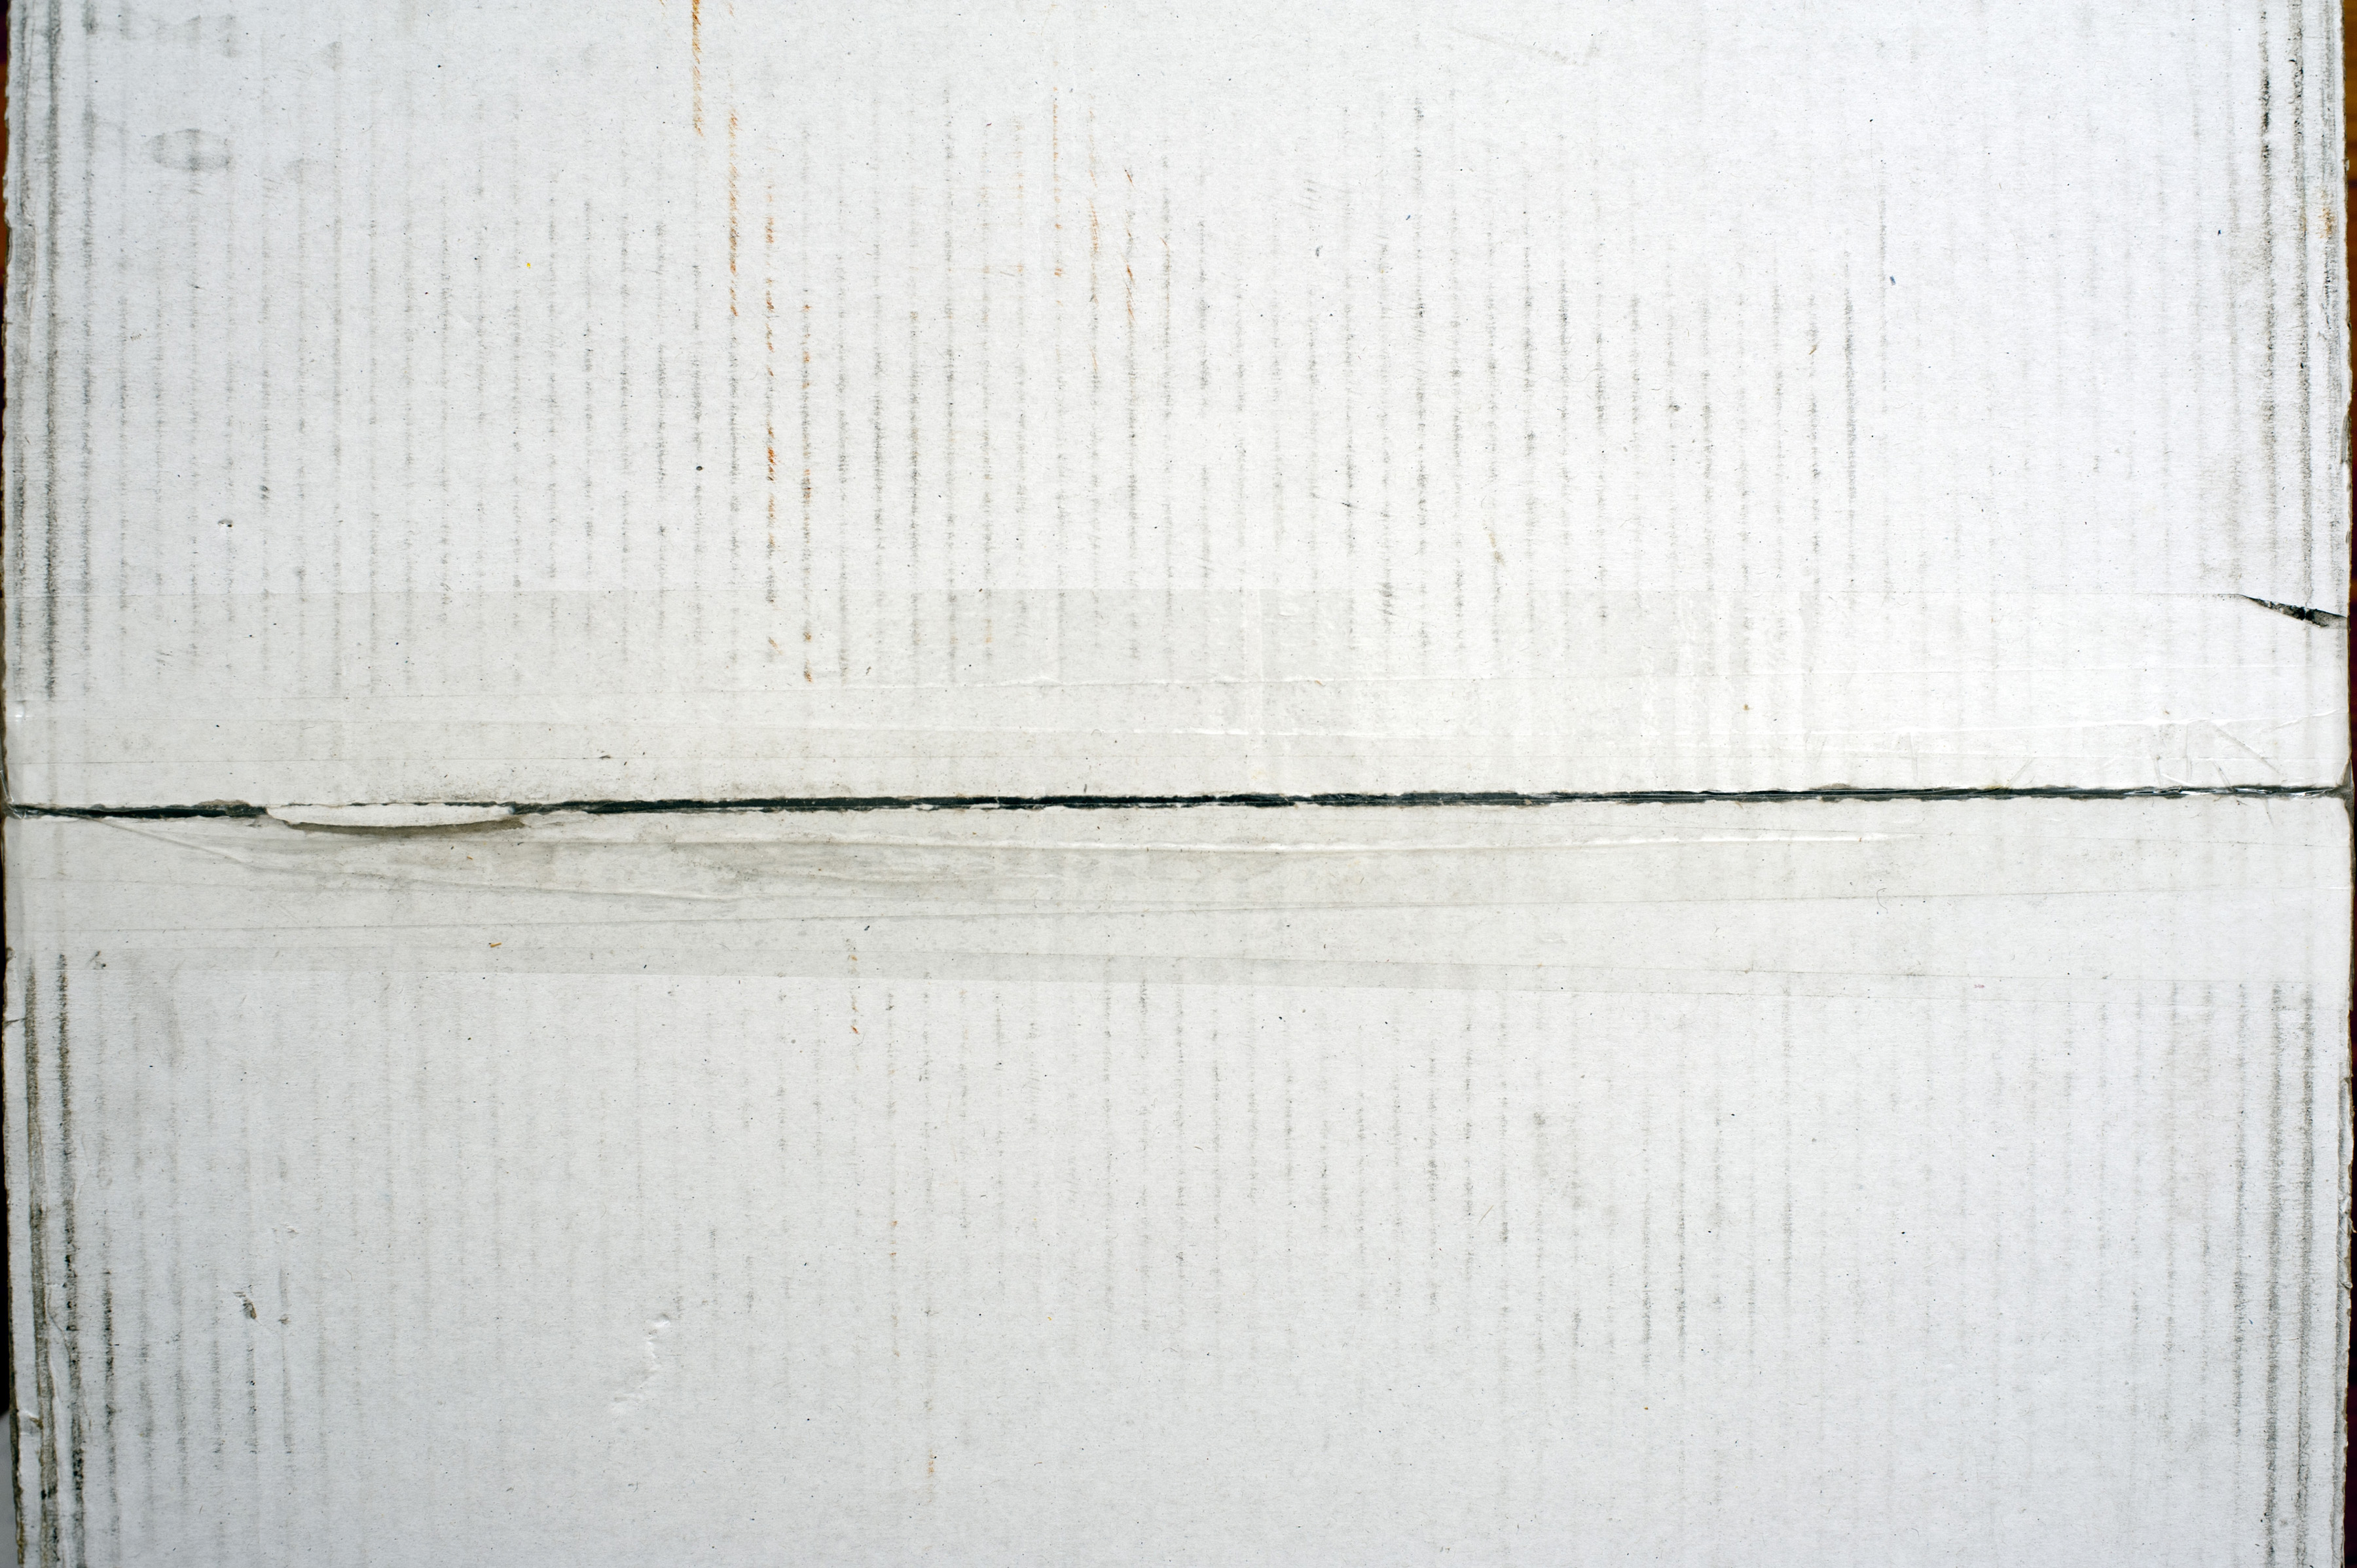 White cardboard background | Free backgrounds and textures | Cr103.com